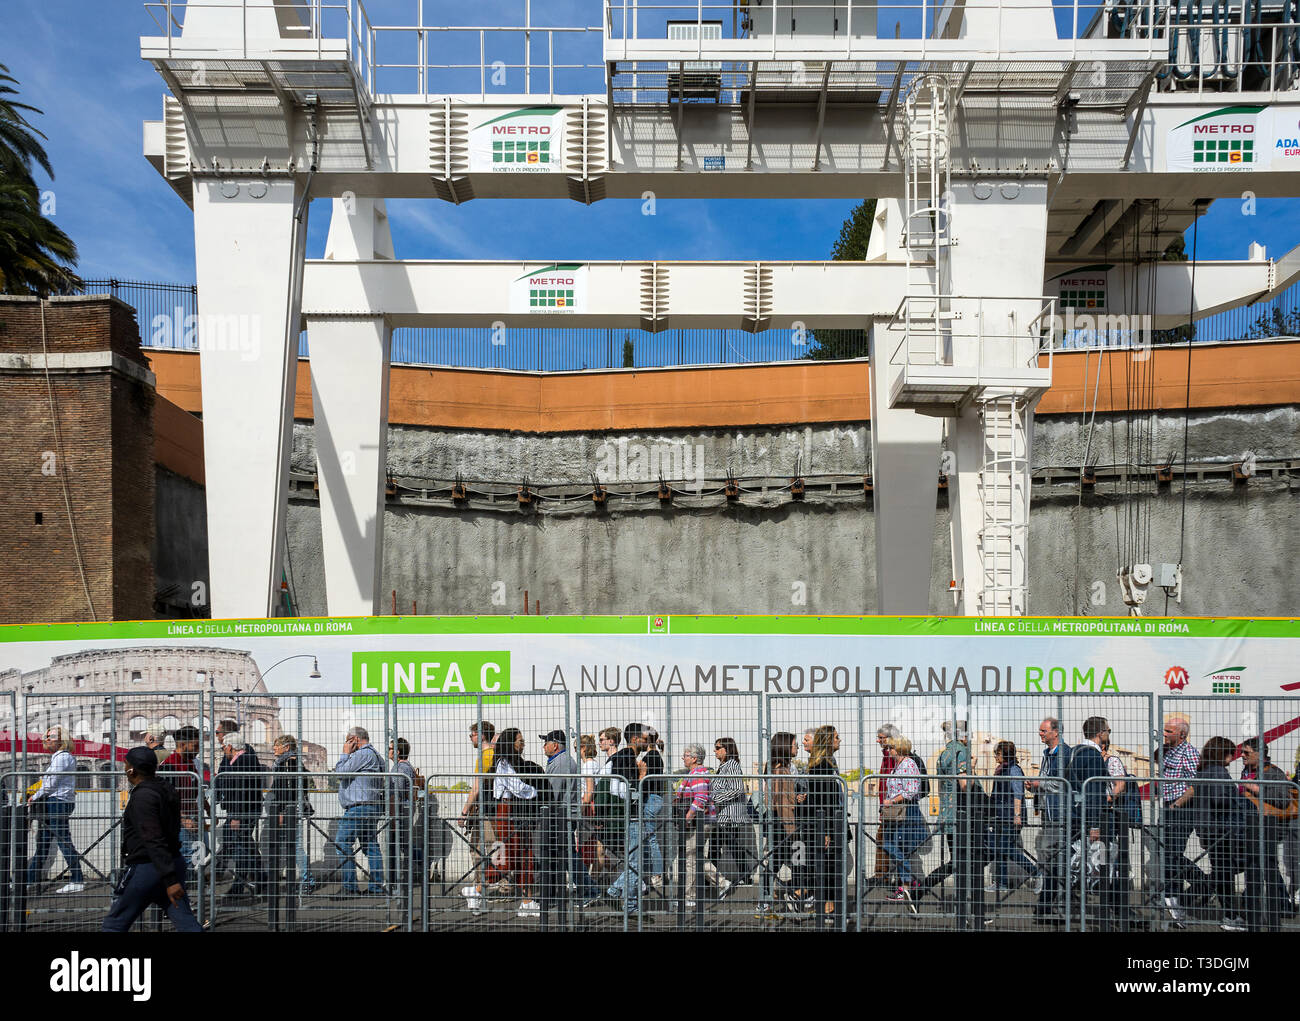 Colosseum, Rome, Italy 04/06/2019: new metro line c building, Fori Imperiali Station. In close-up people strolling, construction site with cranes in t - Stock Image